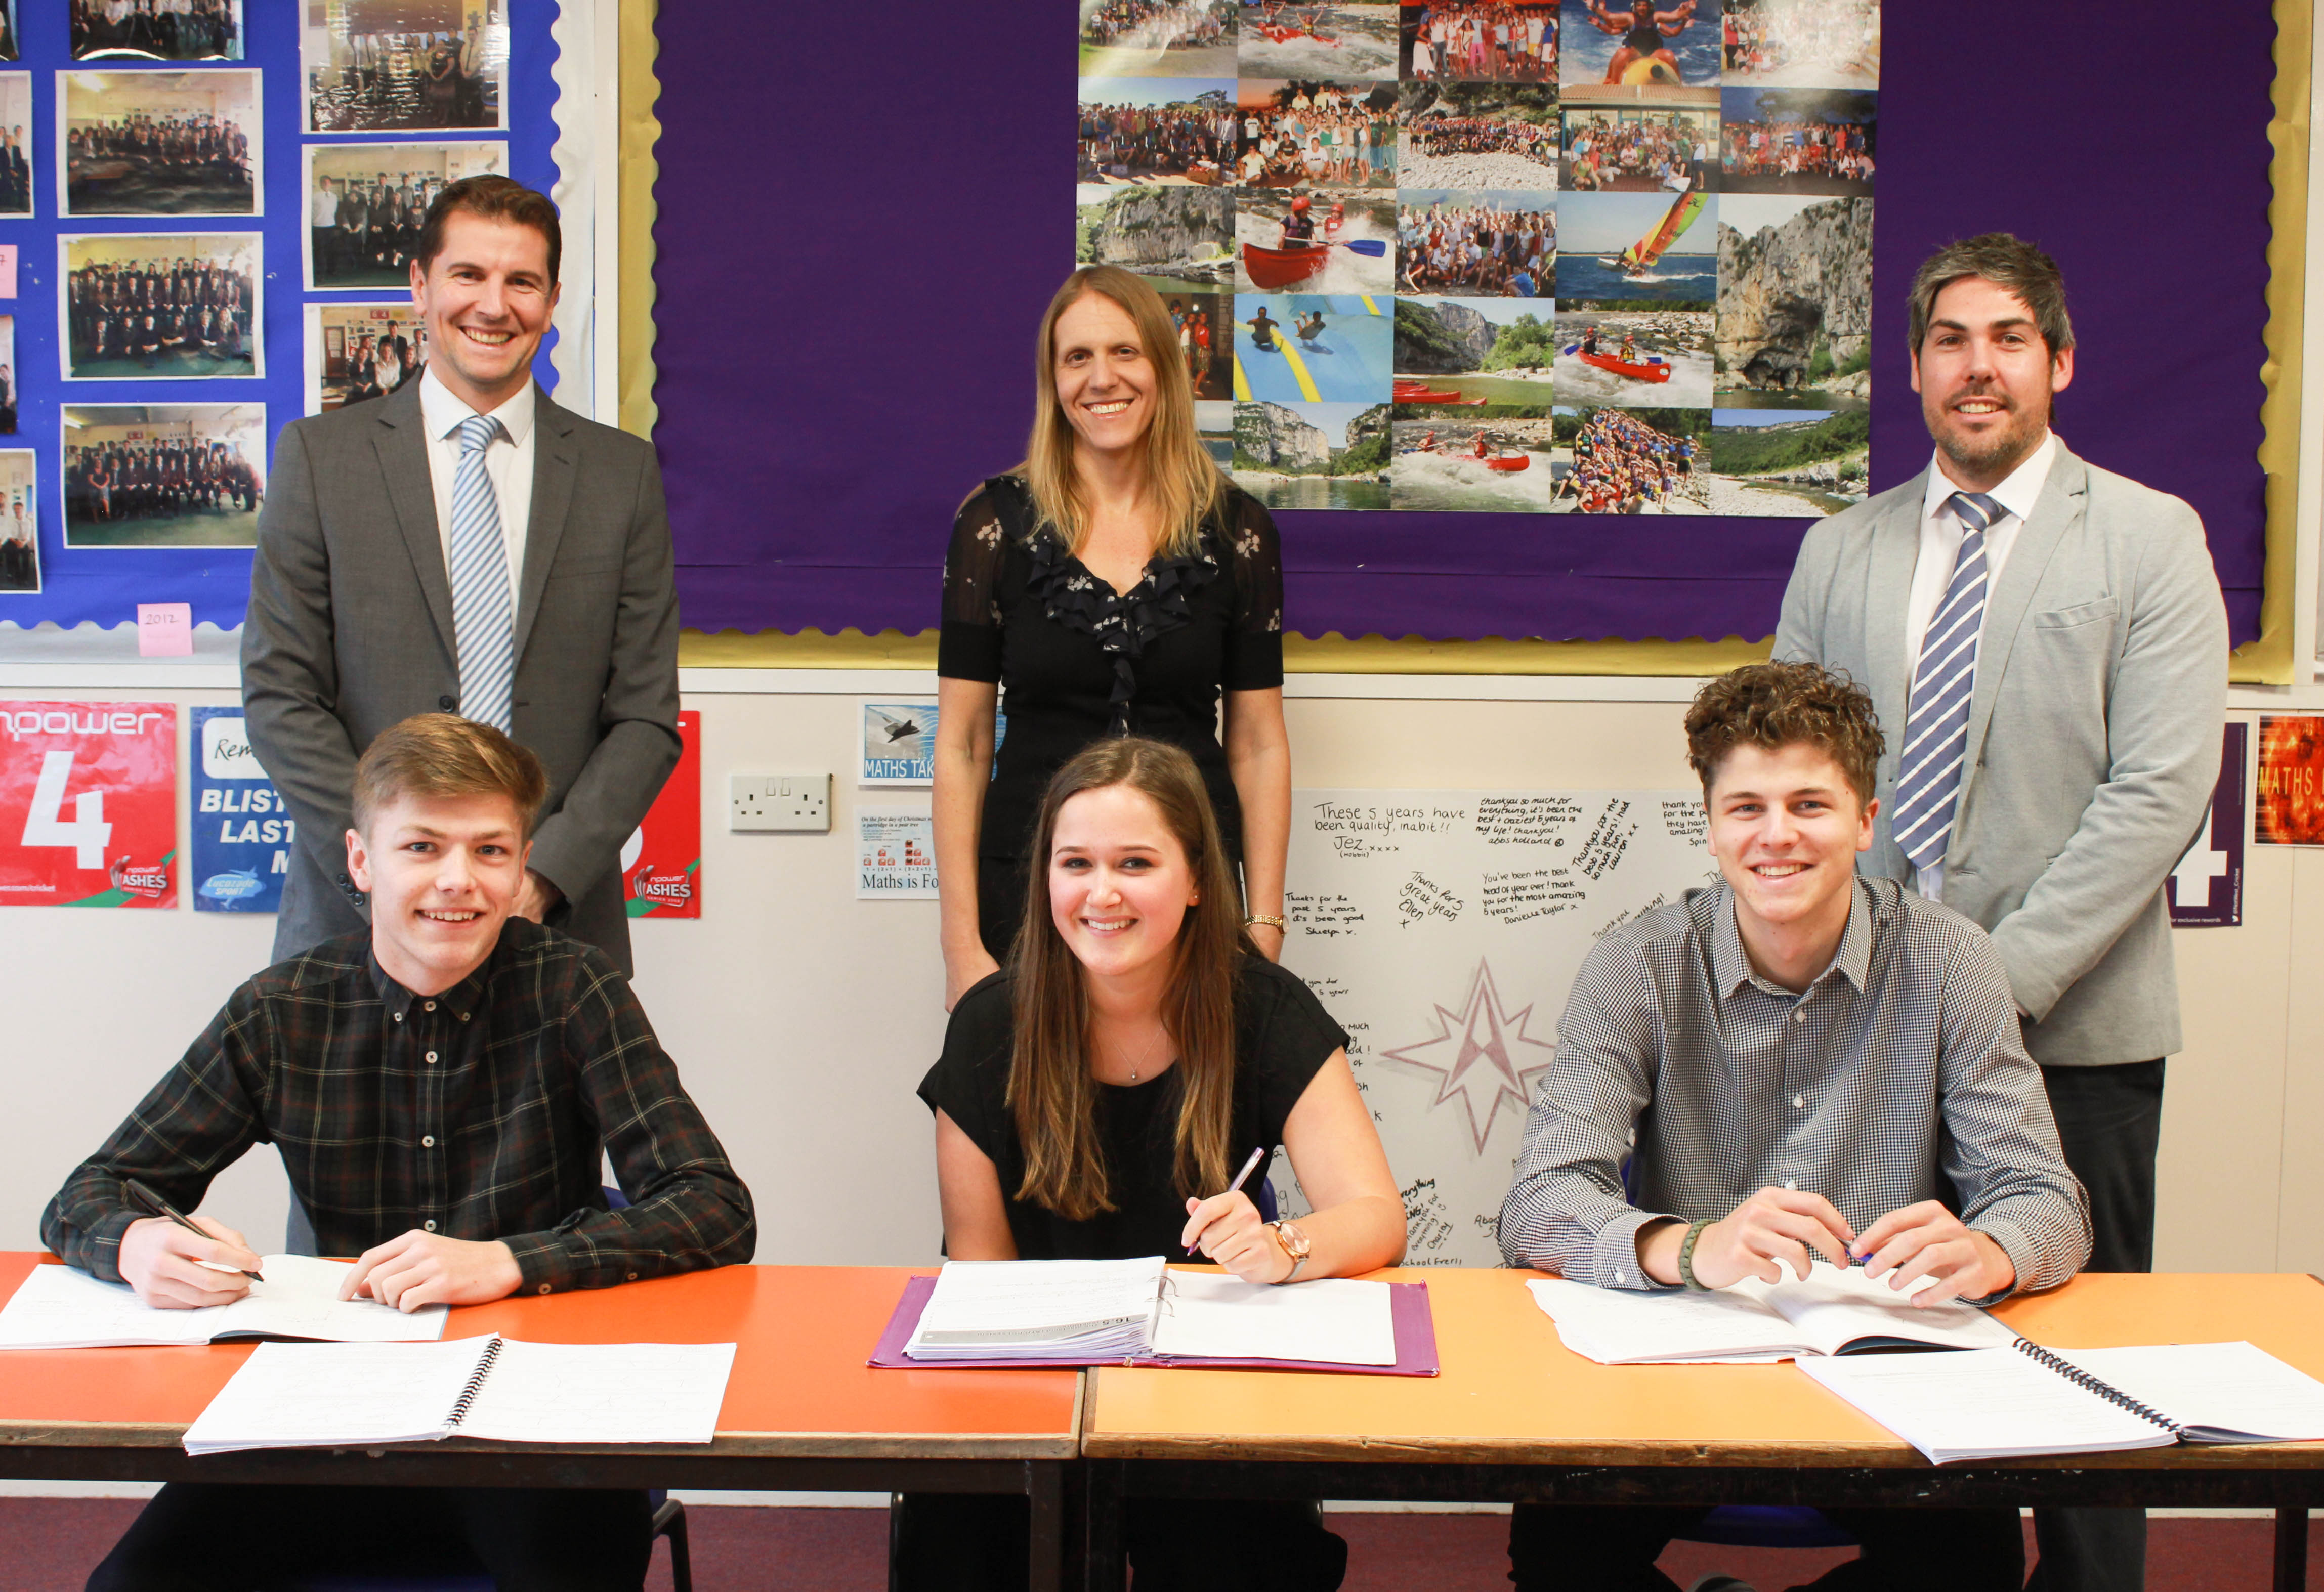 Mr Colman, Mrs Nation, Mr King and students celebrate being recognised for outstanding results